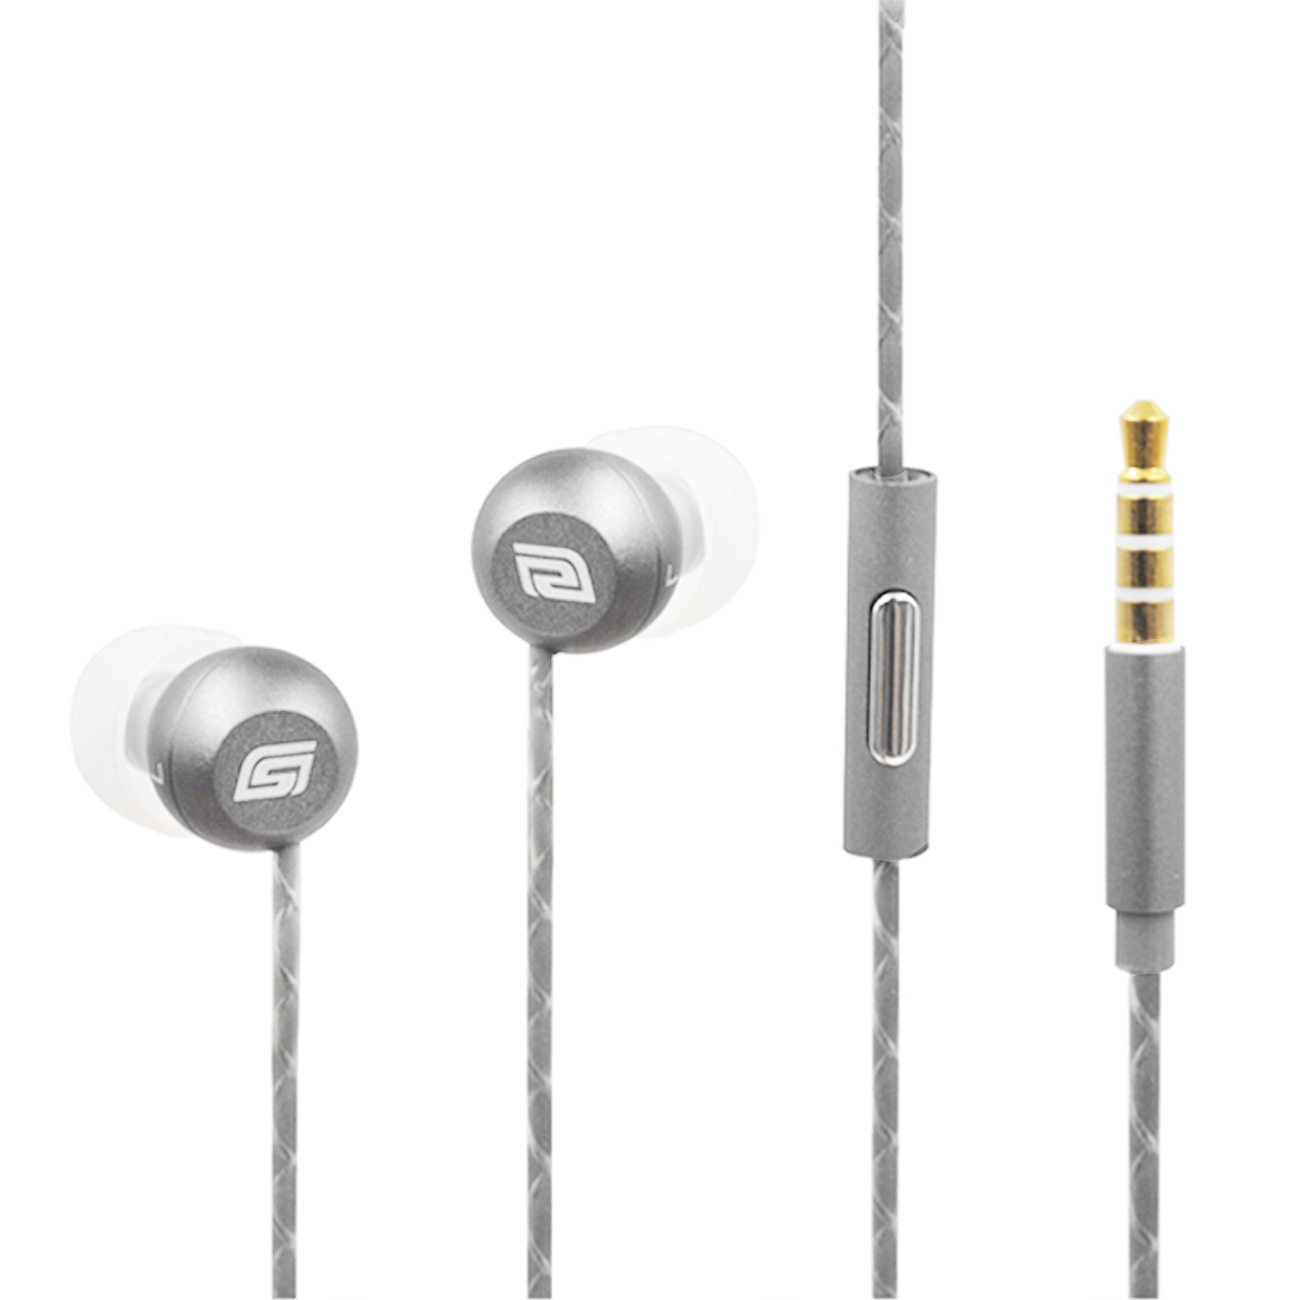 Fashion Metal In-ear headphones in Silver